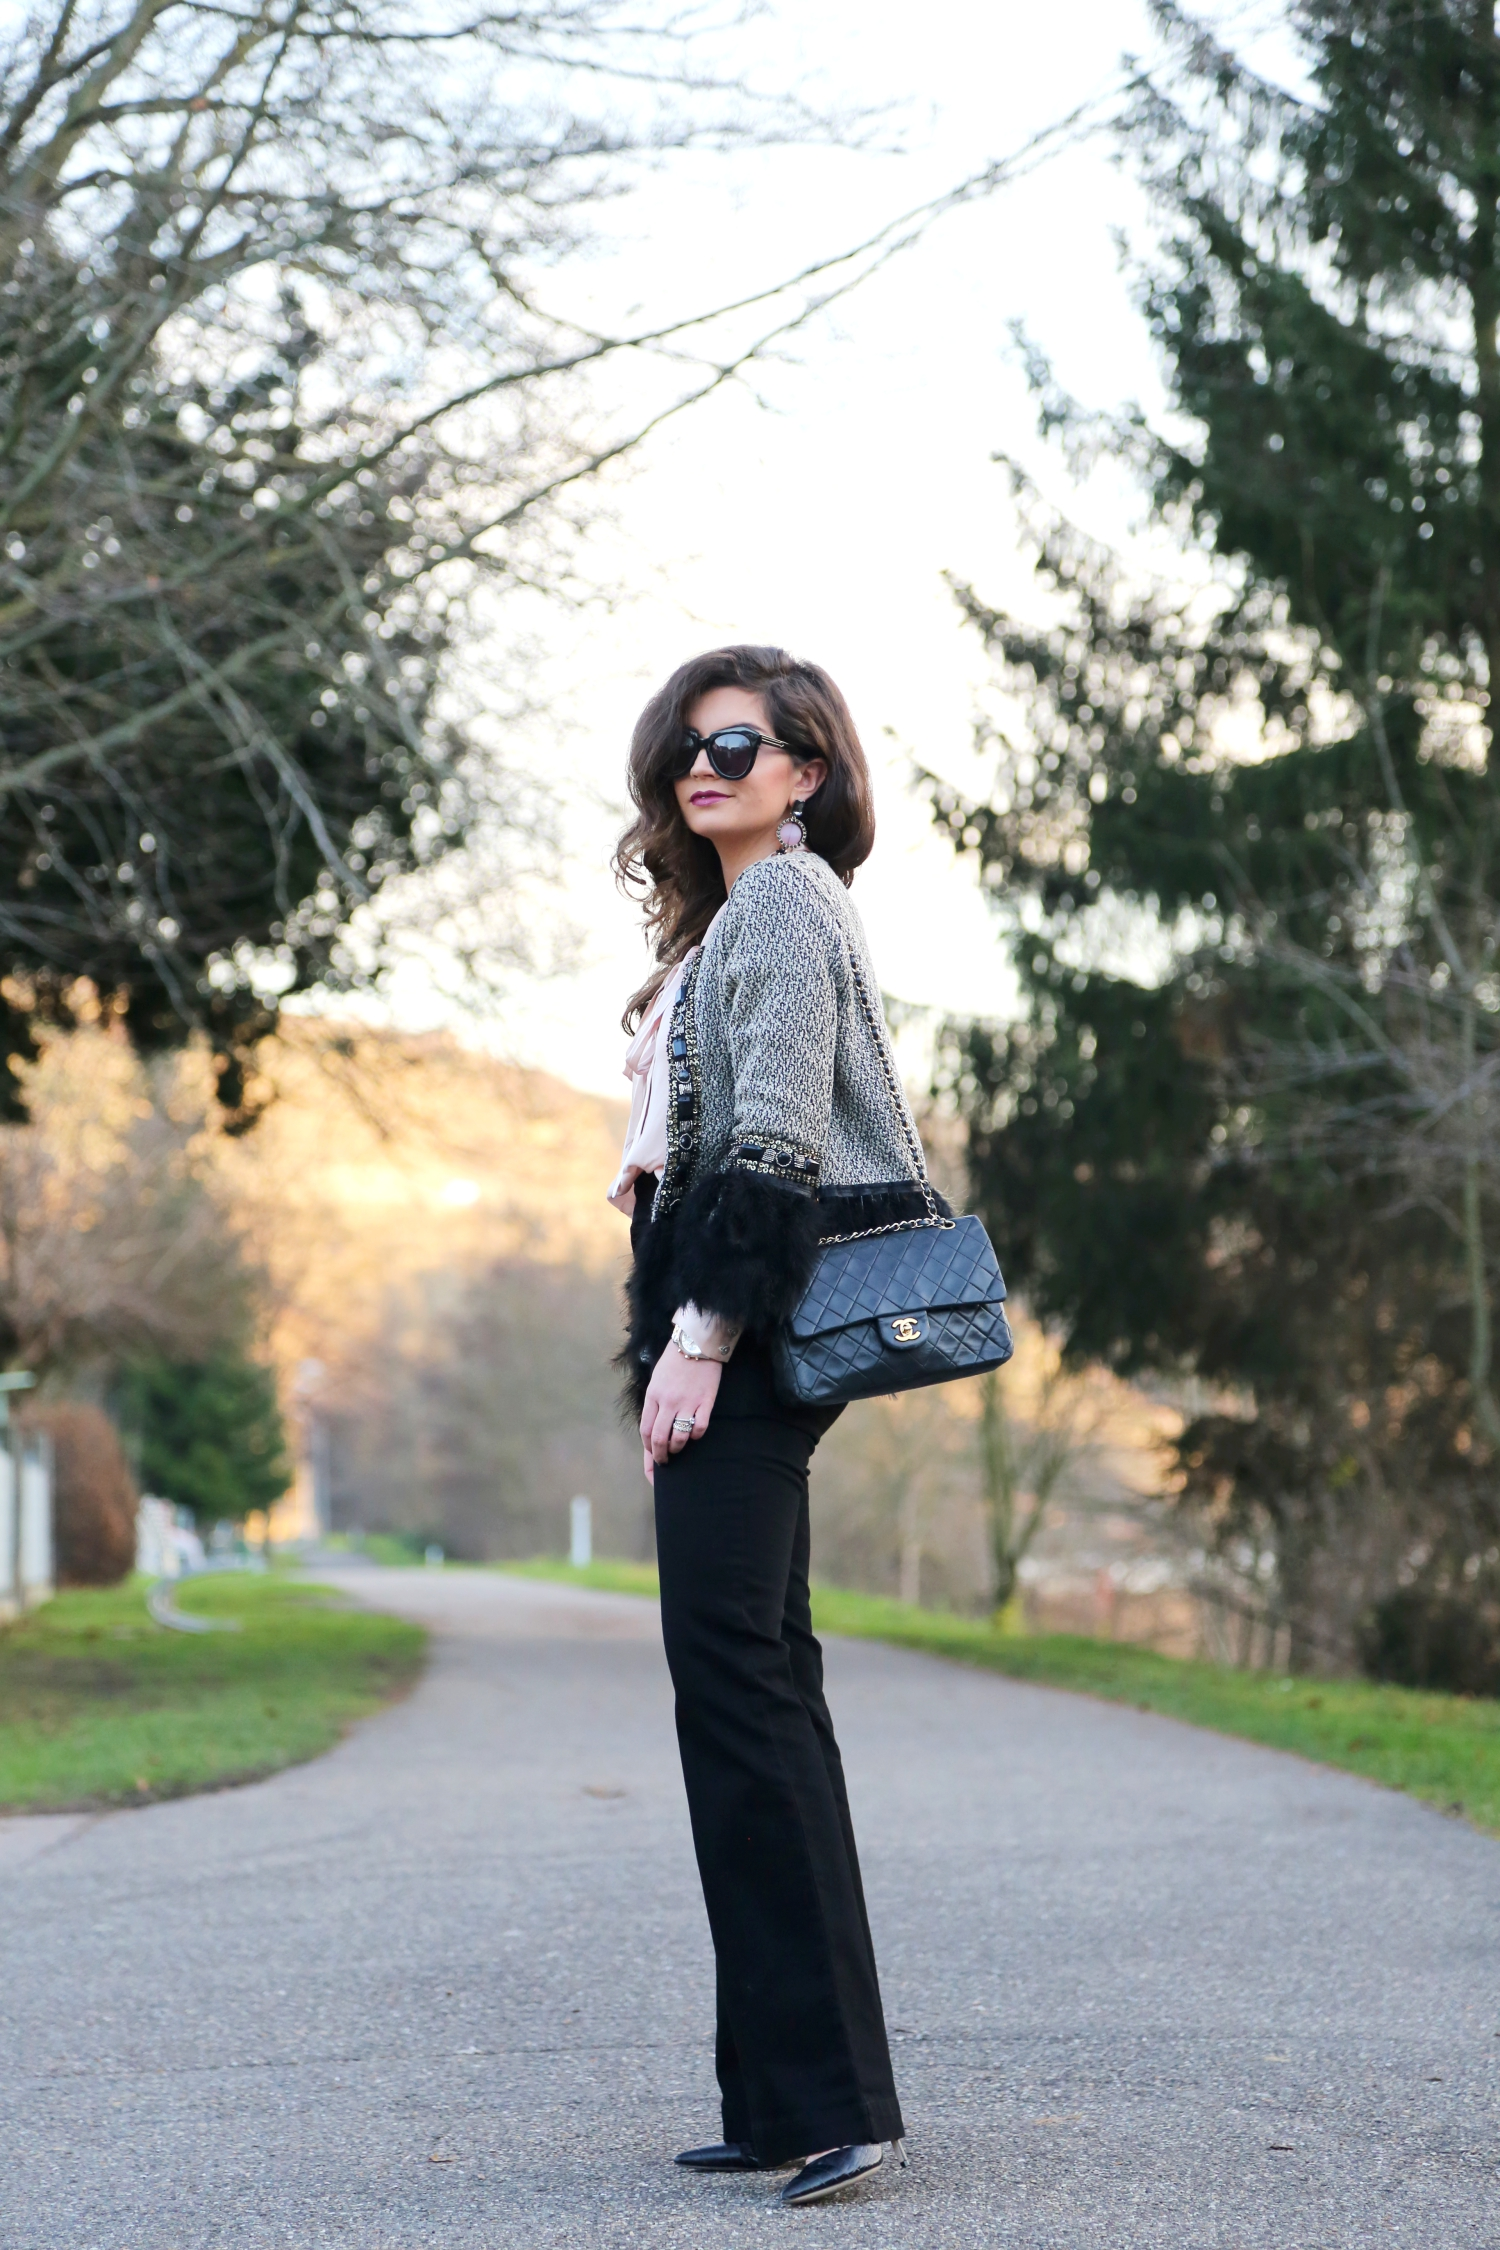 christmas-outfit-flared-jeans-chanel-bag-fashionhippieloves